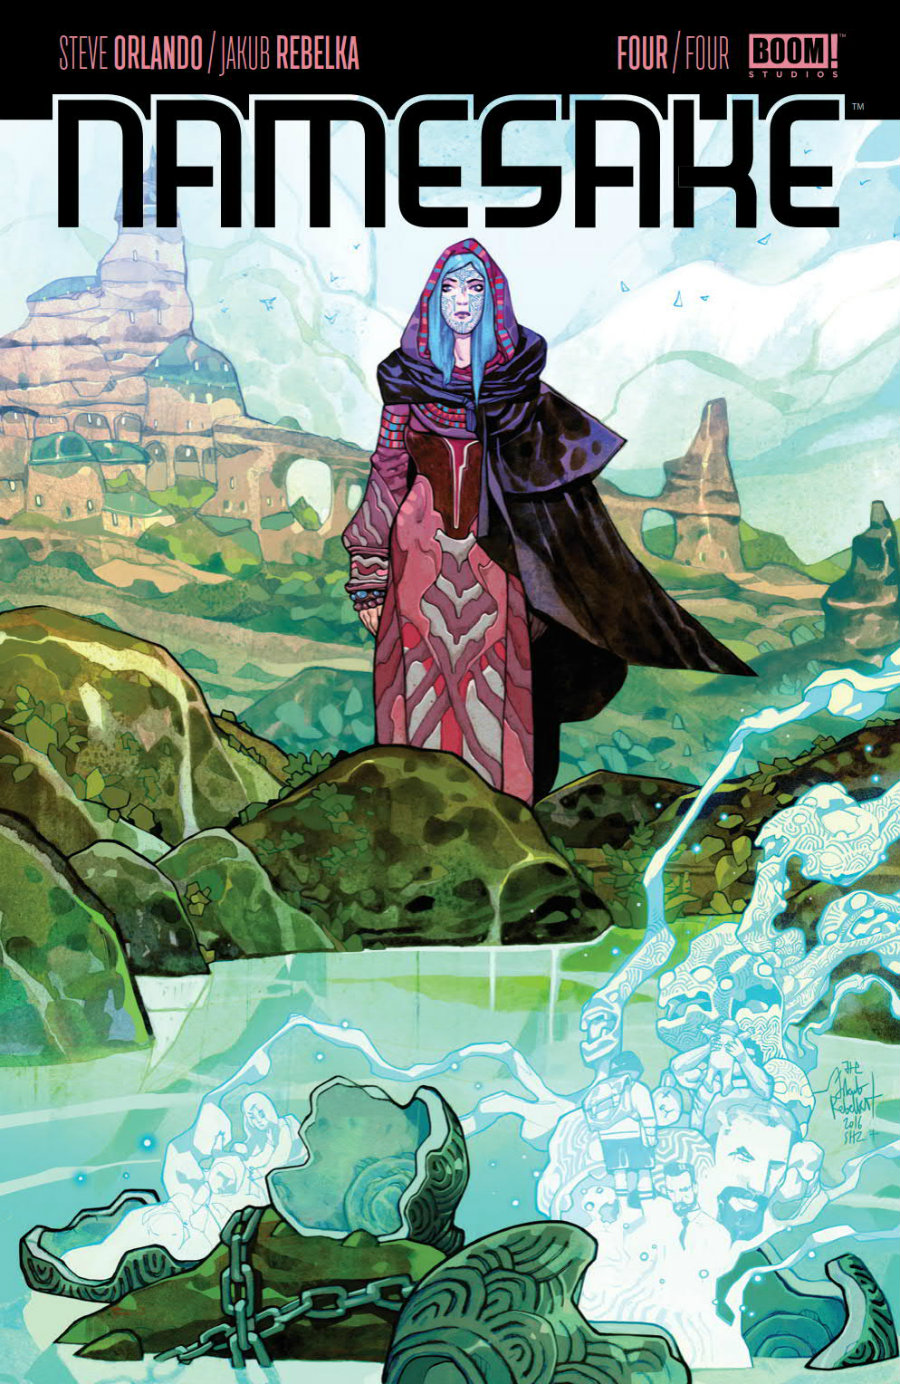 3 Reasons Why You Need to Read 'Namesake' by Steve Orlando